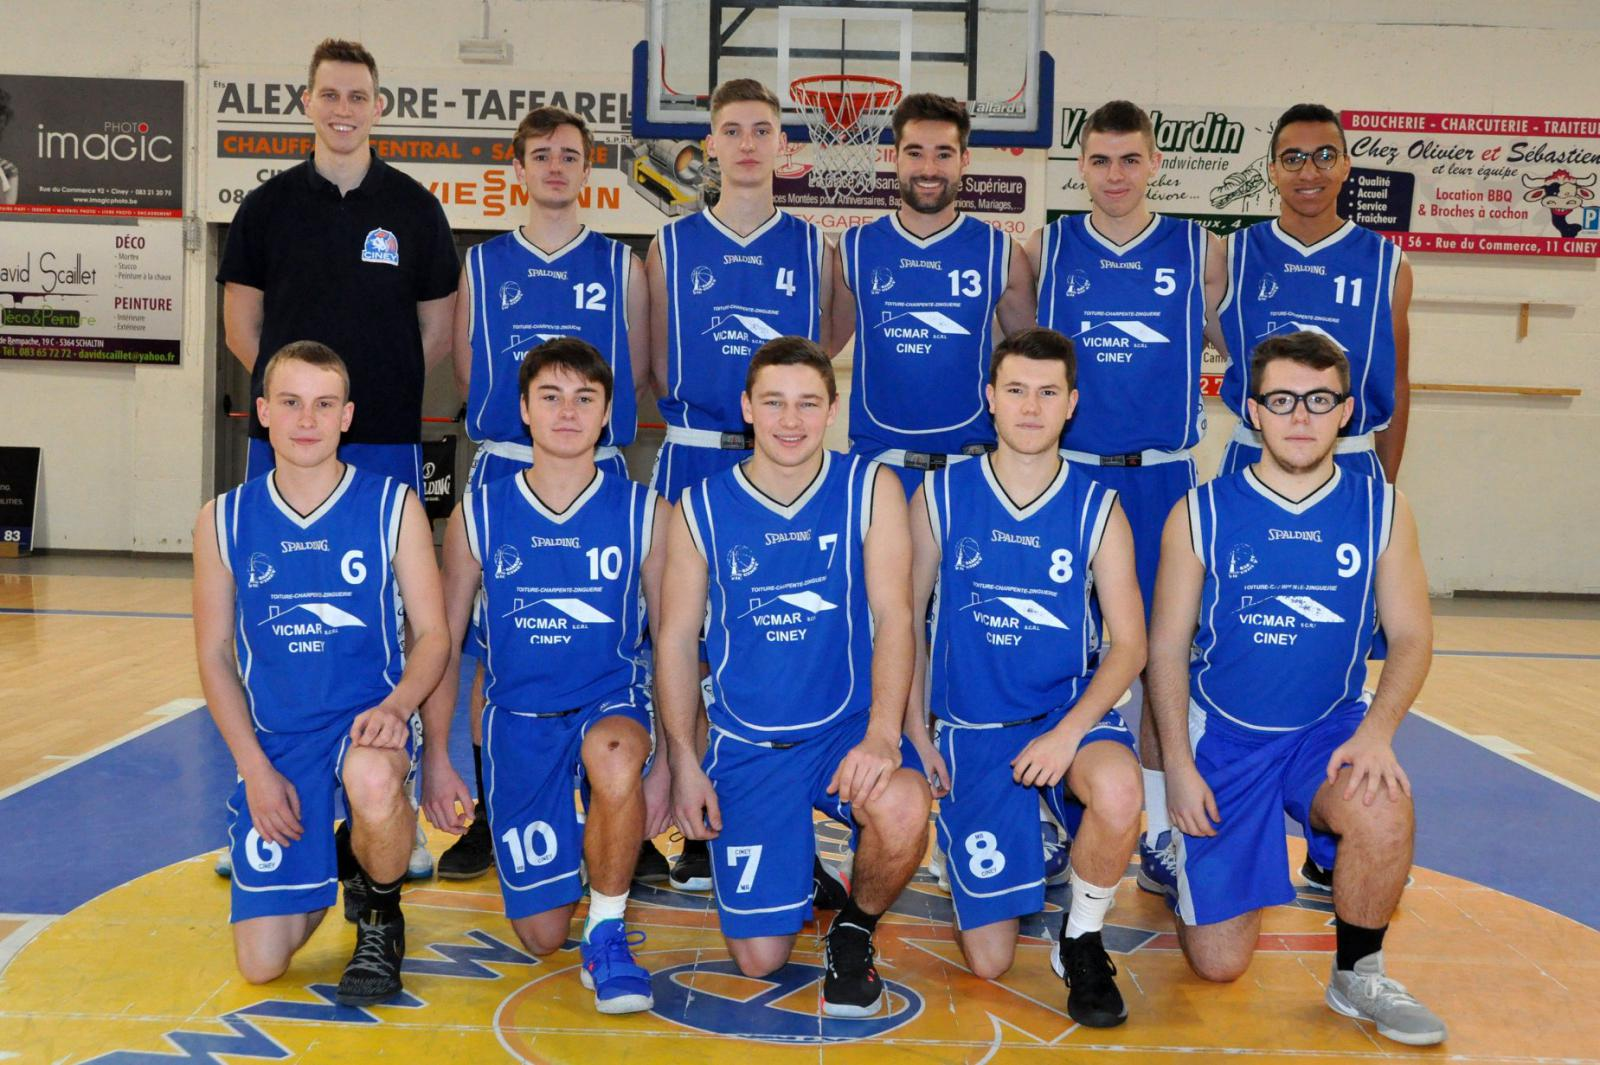 P3 Hommes CINEY C - Royal Basket Club Ciney